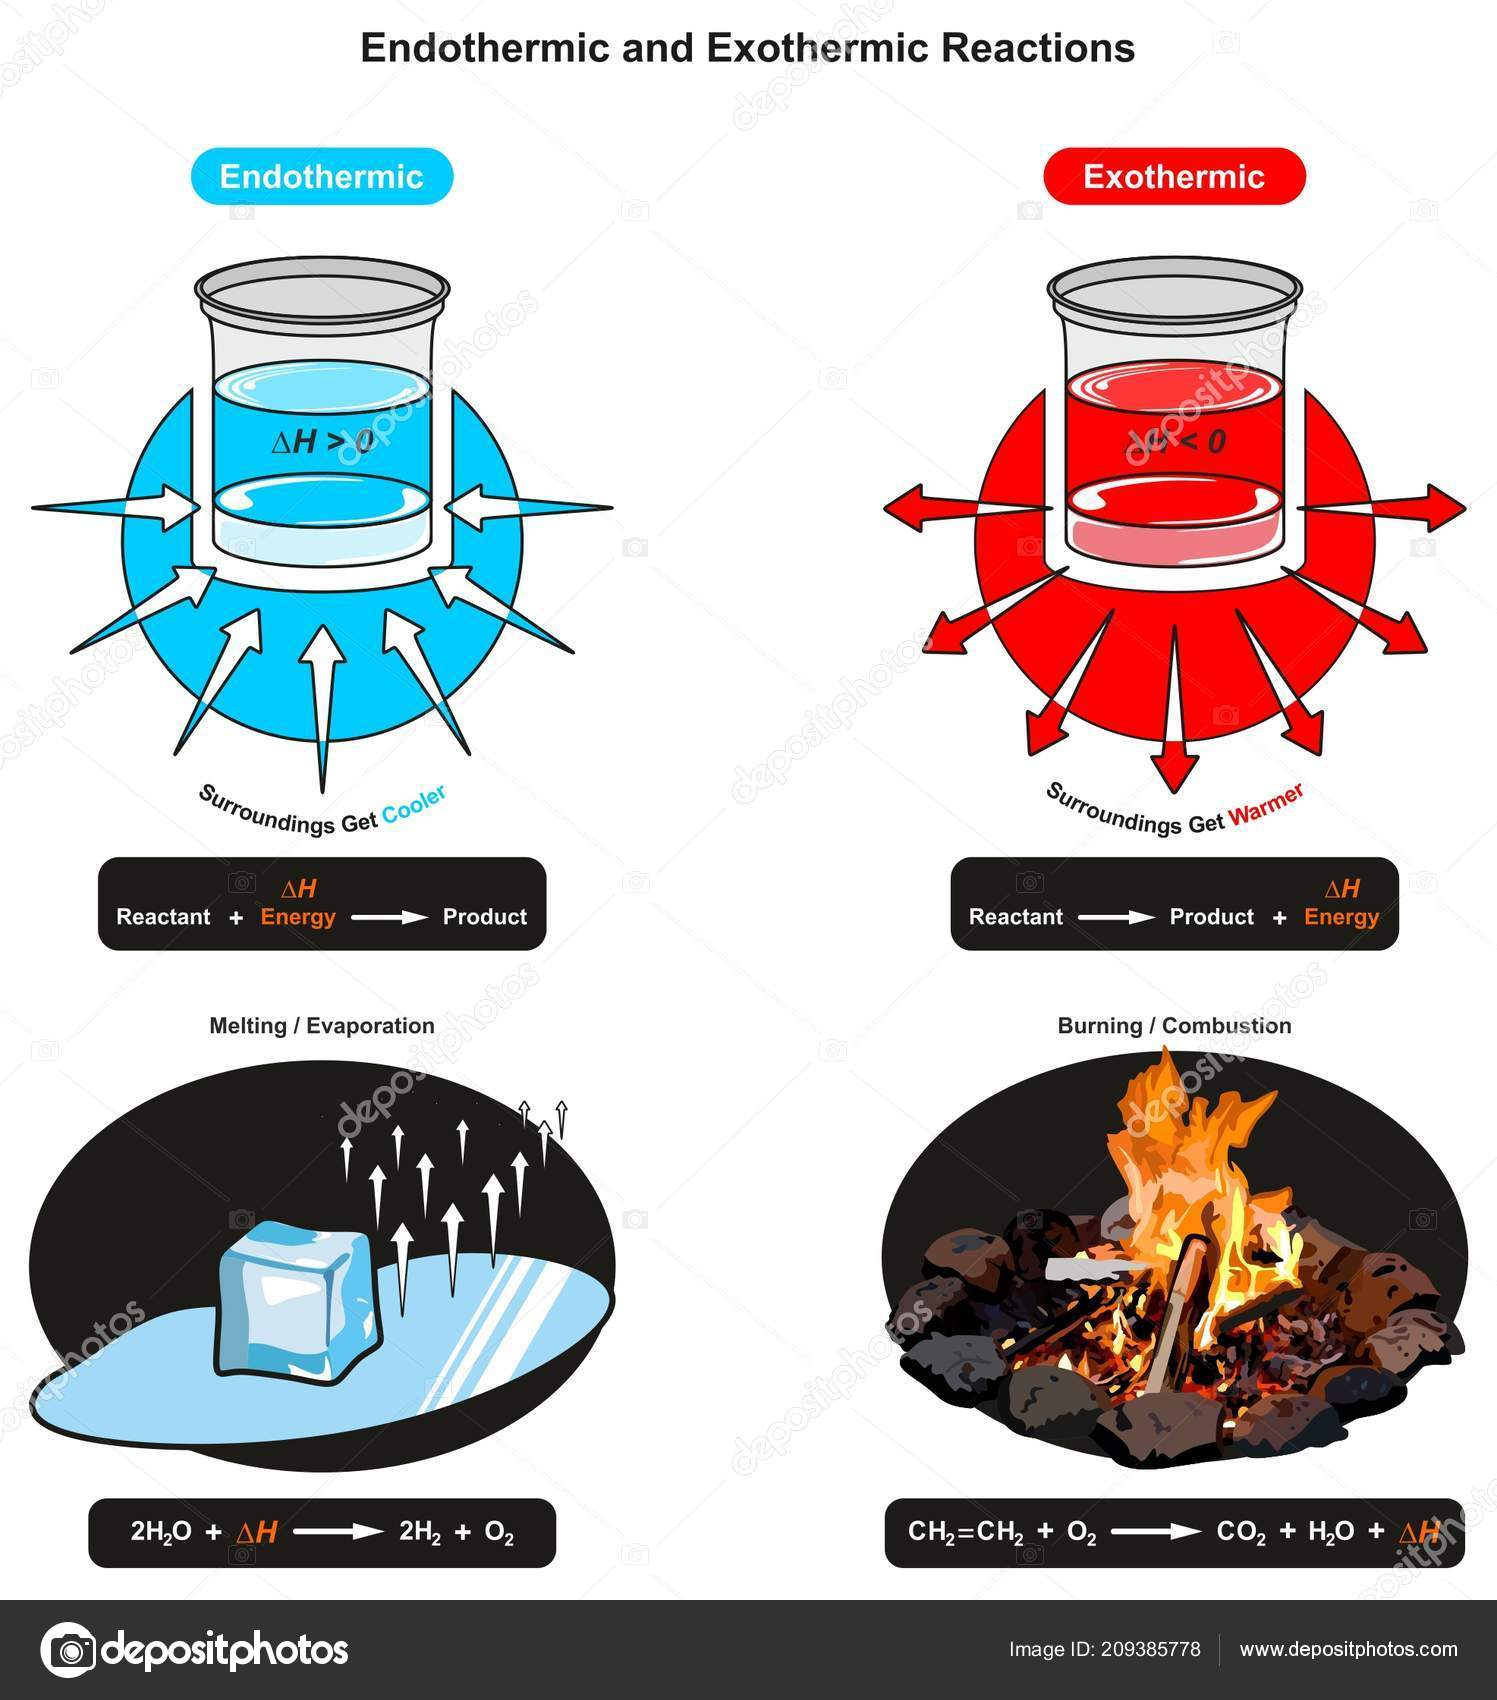 endothermic and exothermic reactions infographic diagram showing relation  between reactant energy and product also examples of ice cube melting and  fire